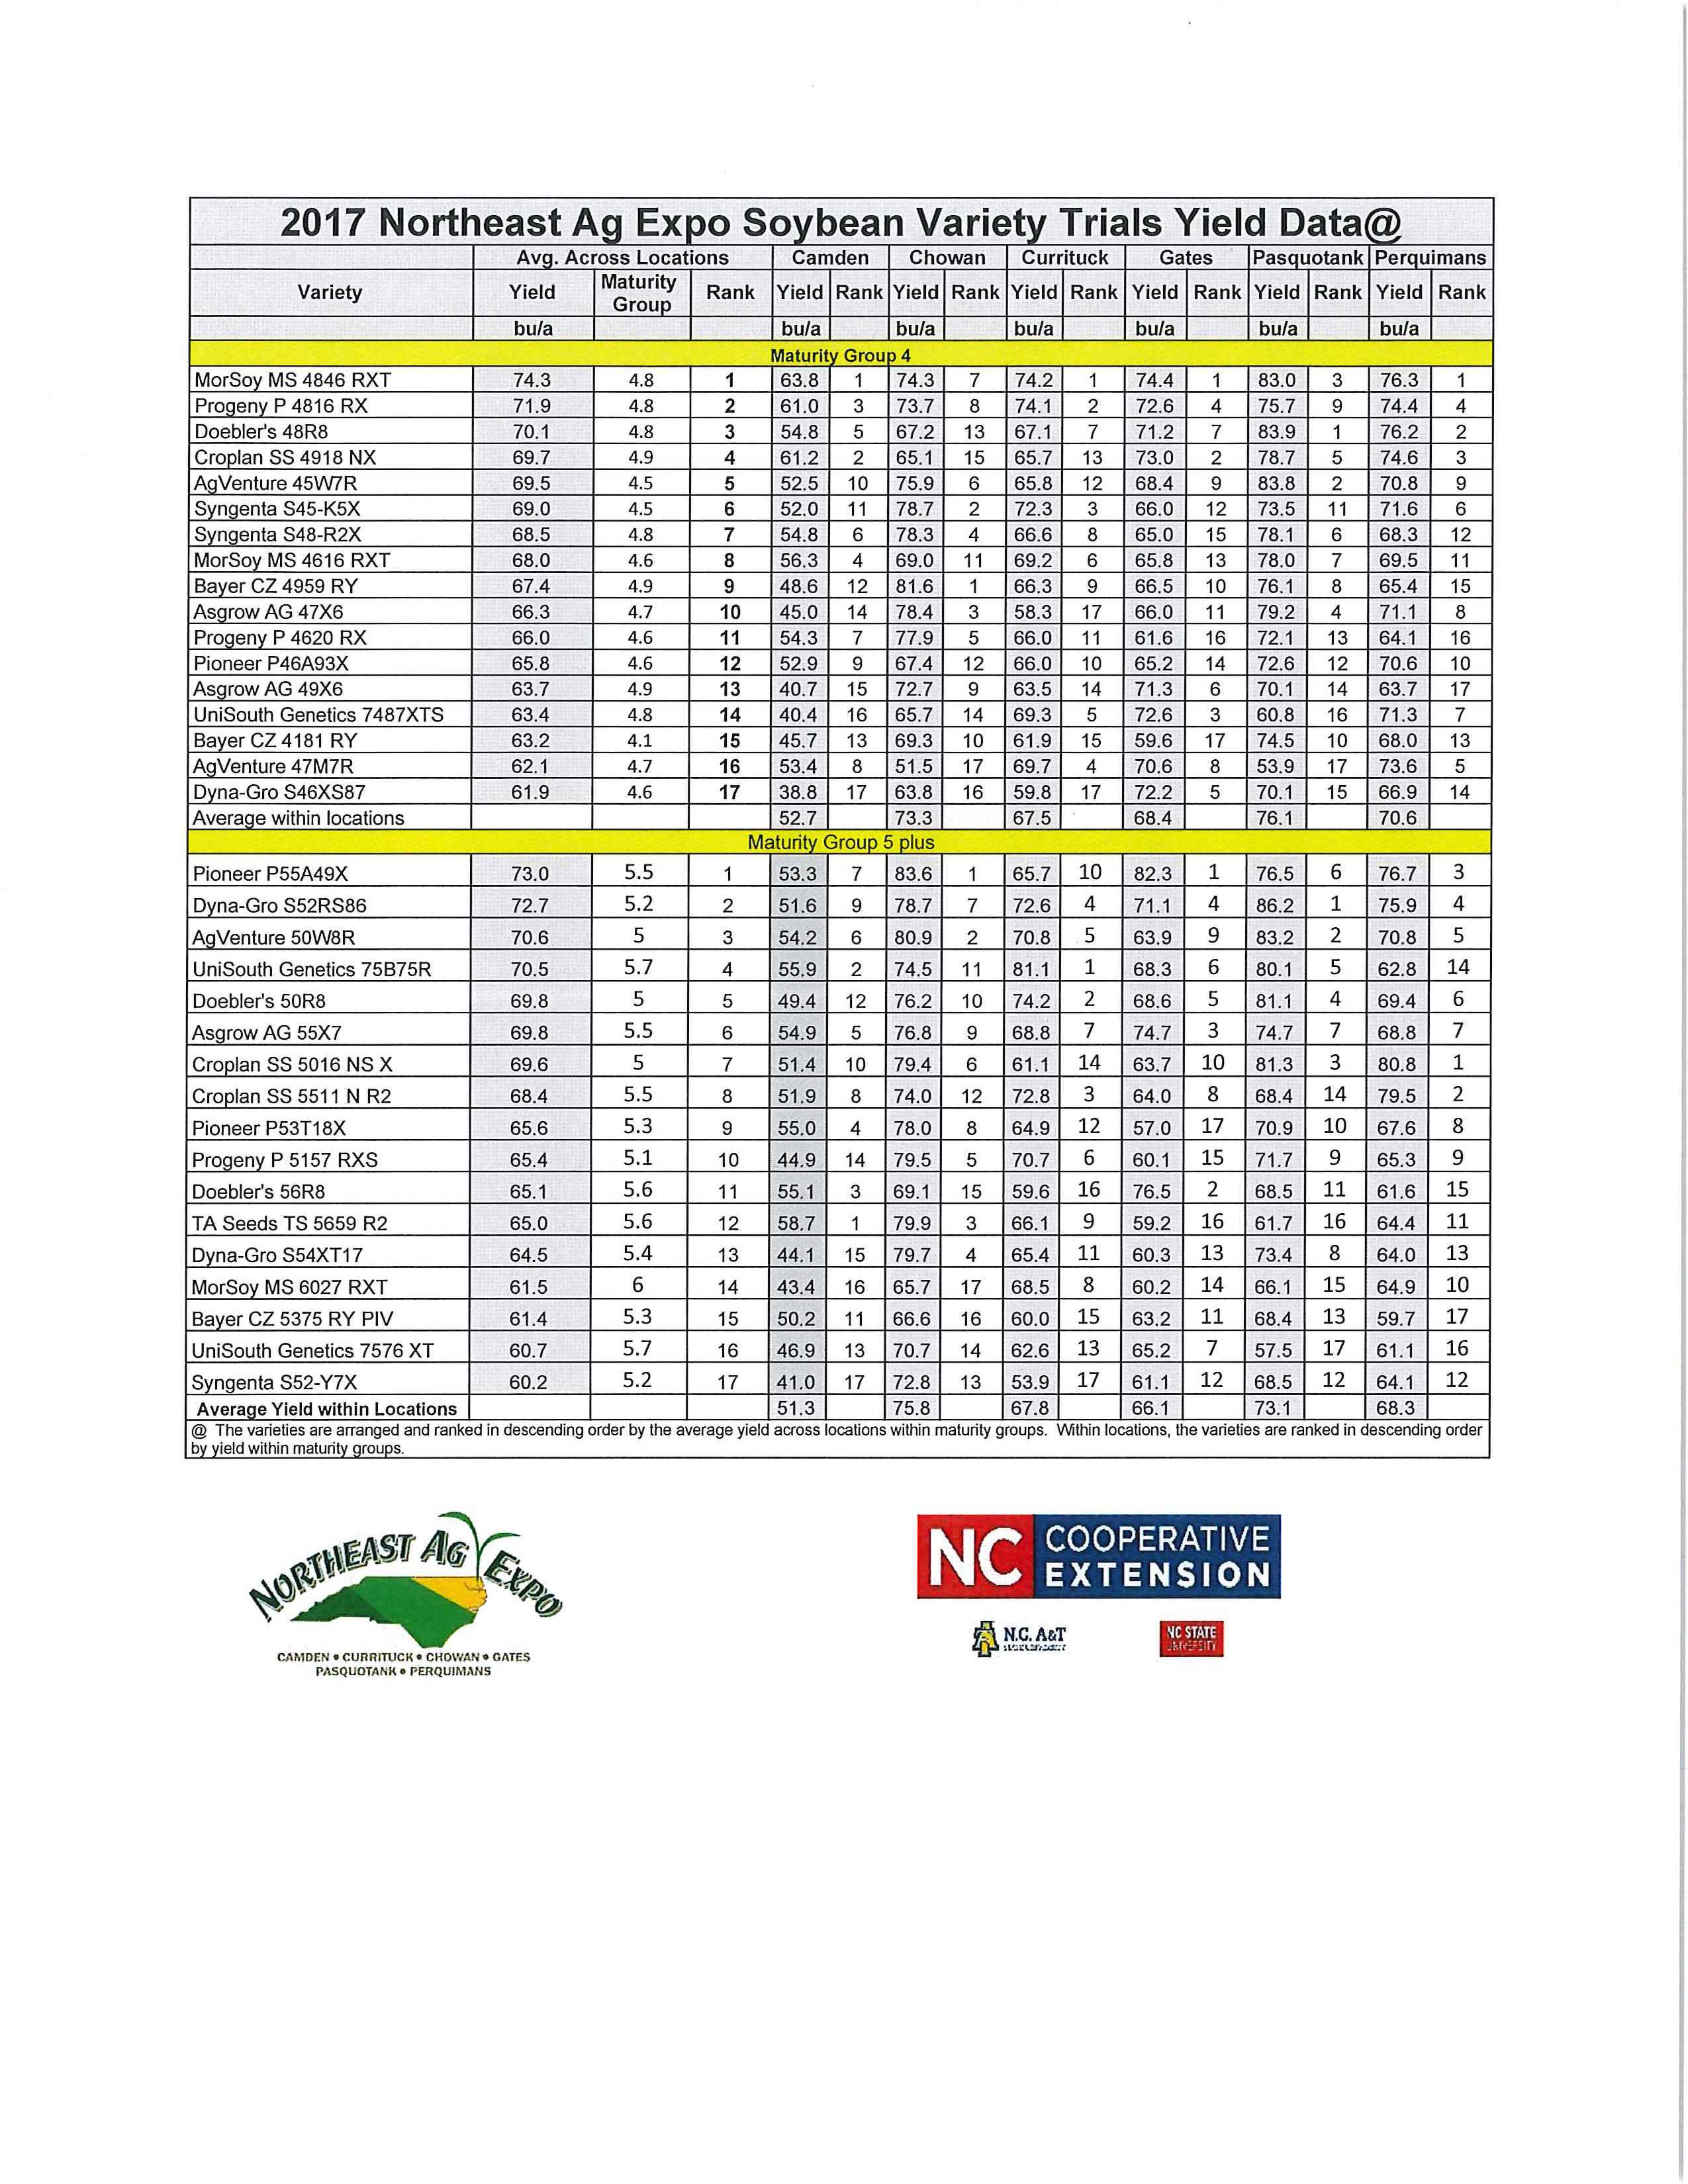 2017 Northeast Ag Expo soybean variety trial results